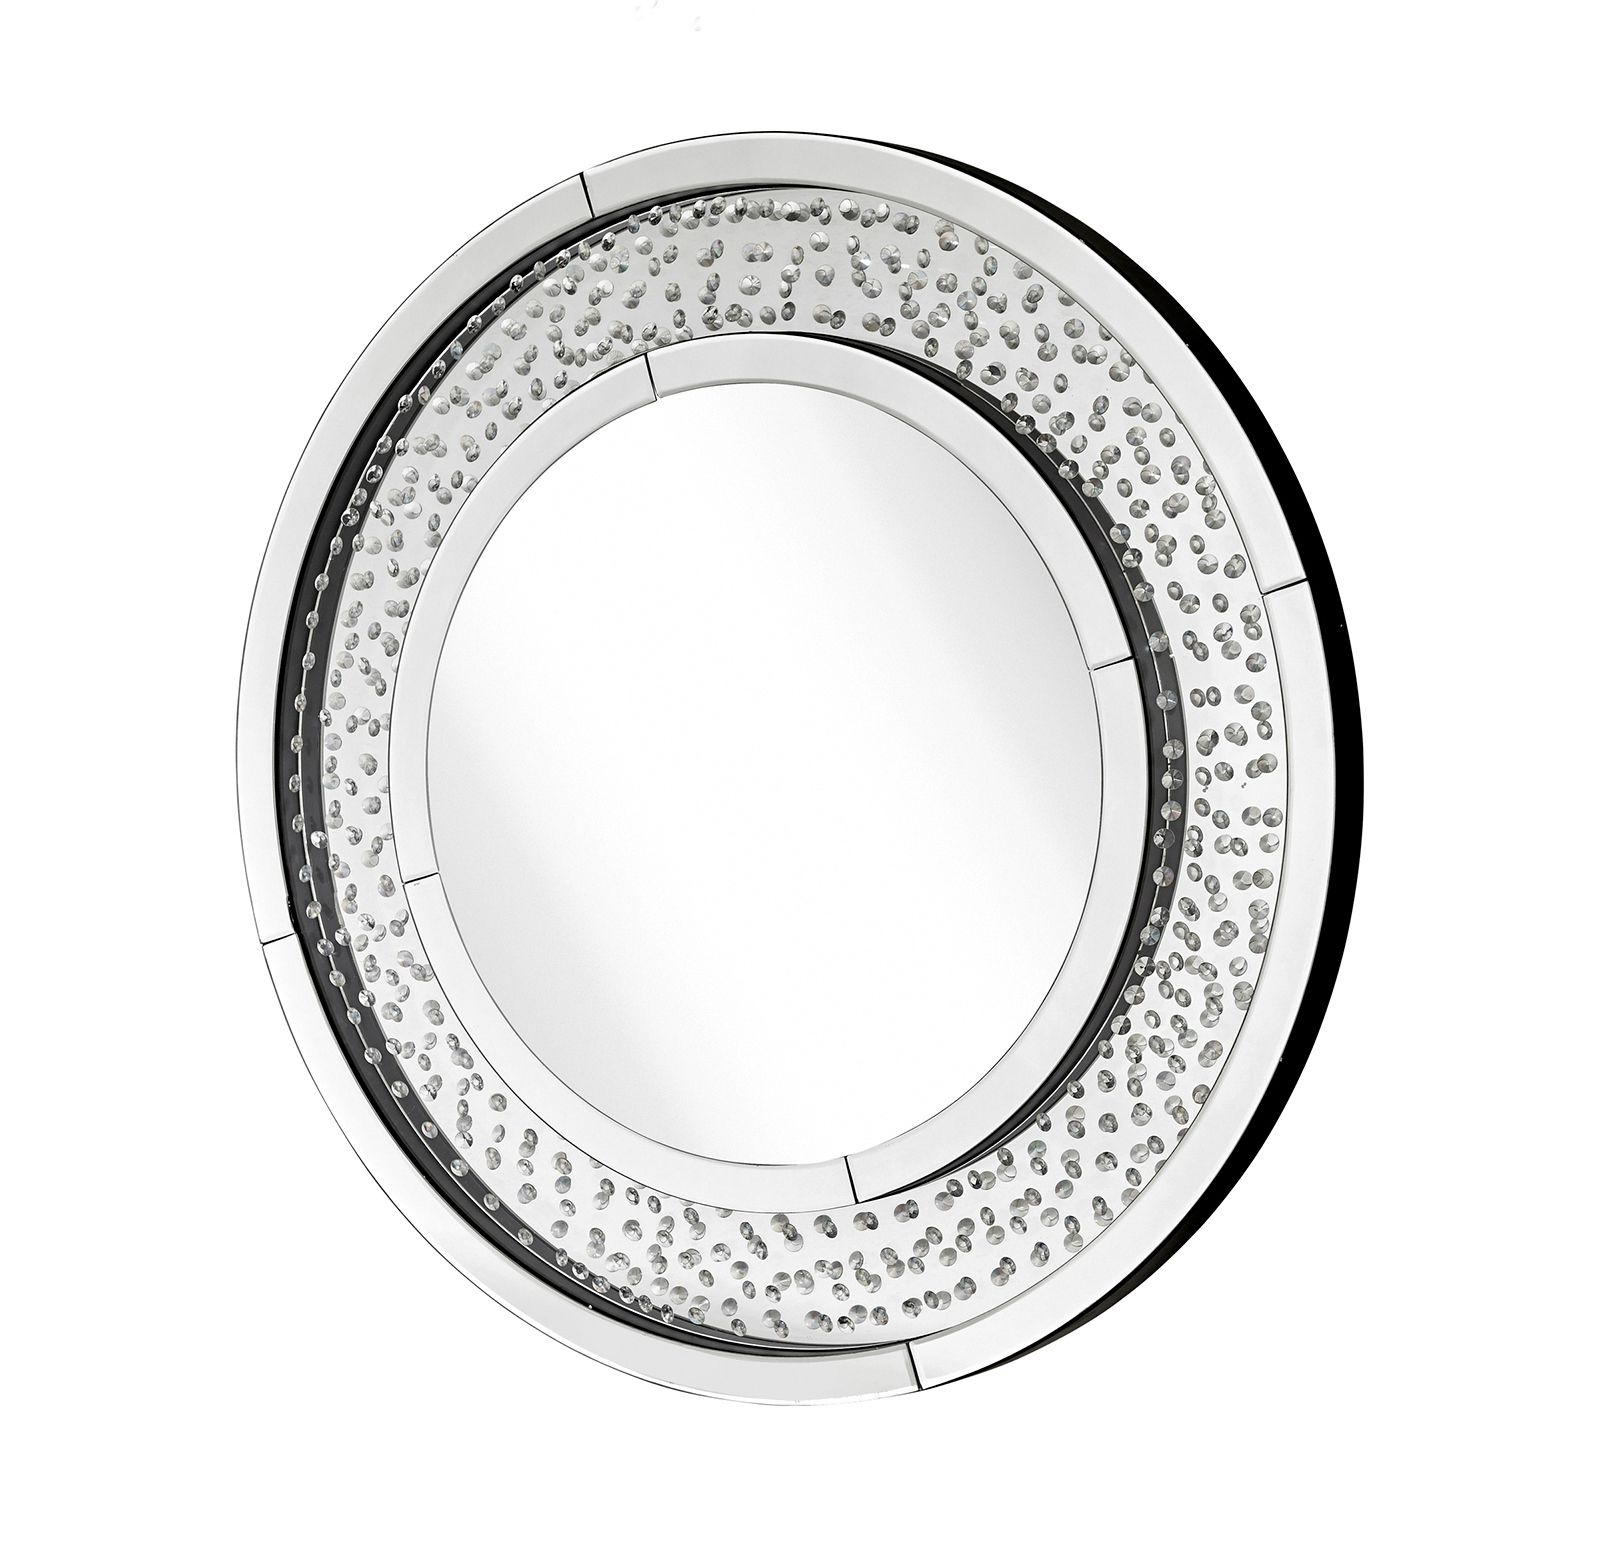 Floating Crystal – Floating Crystal Wall Mirror Inside Best And Newest Wall Mirrors With Crystals (View 11 of 20)